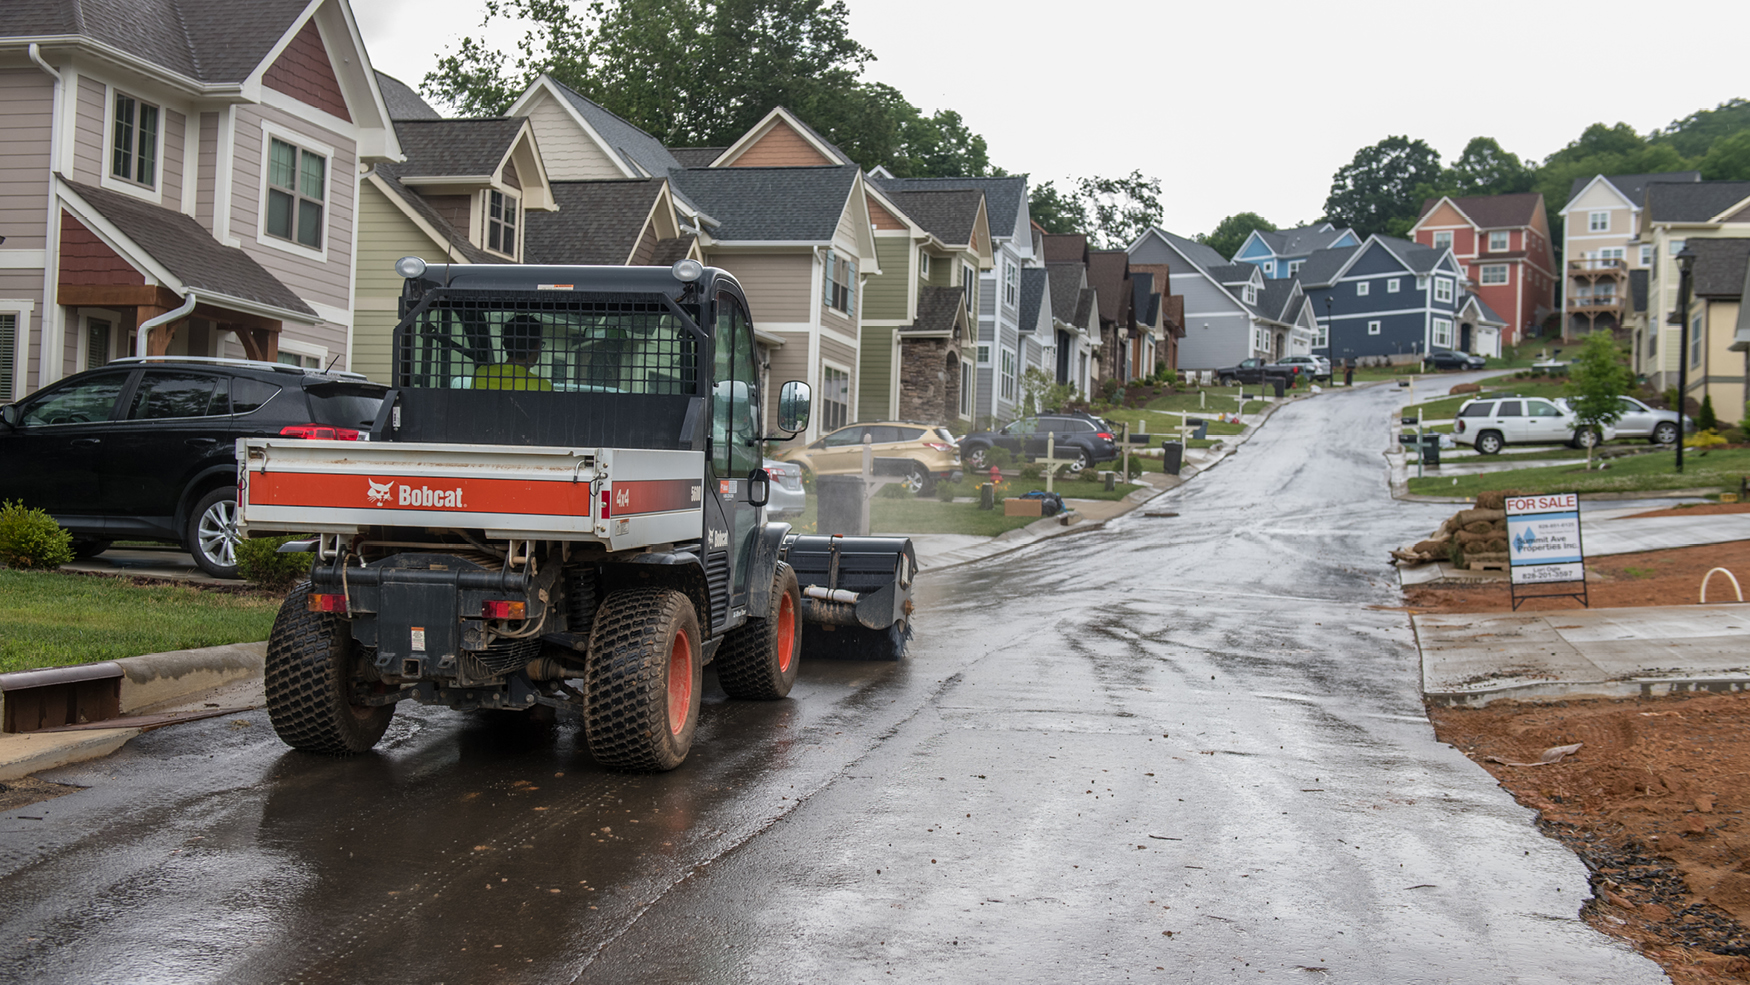 Toolcat 5600 sweeps dirt from the street near a recently graded yard.